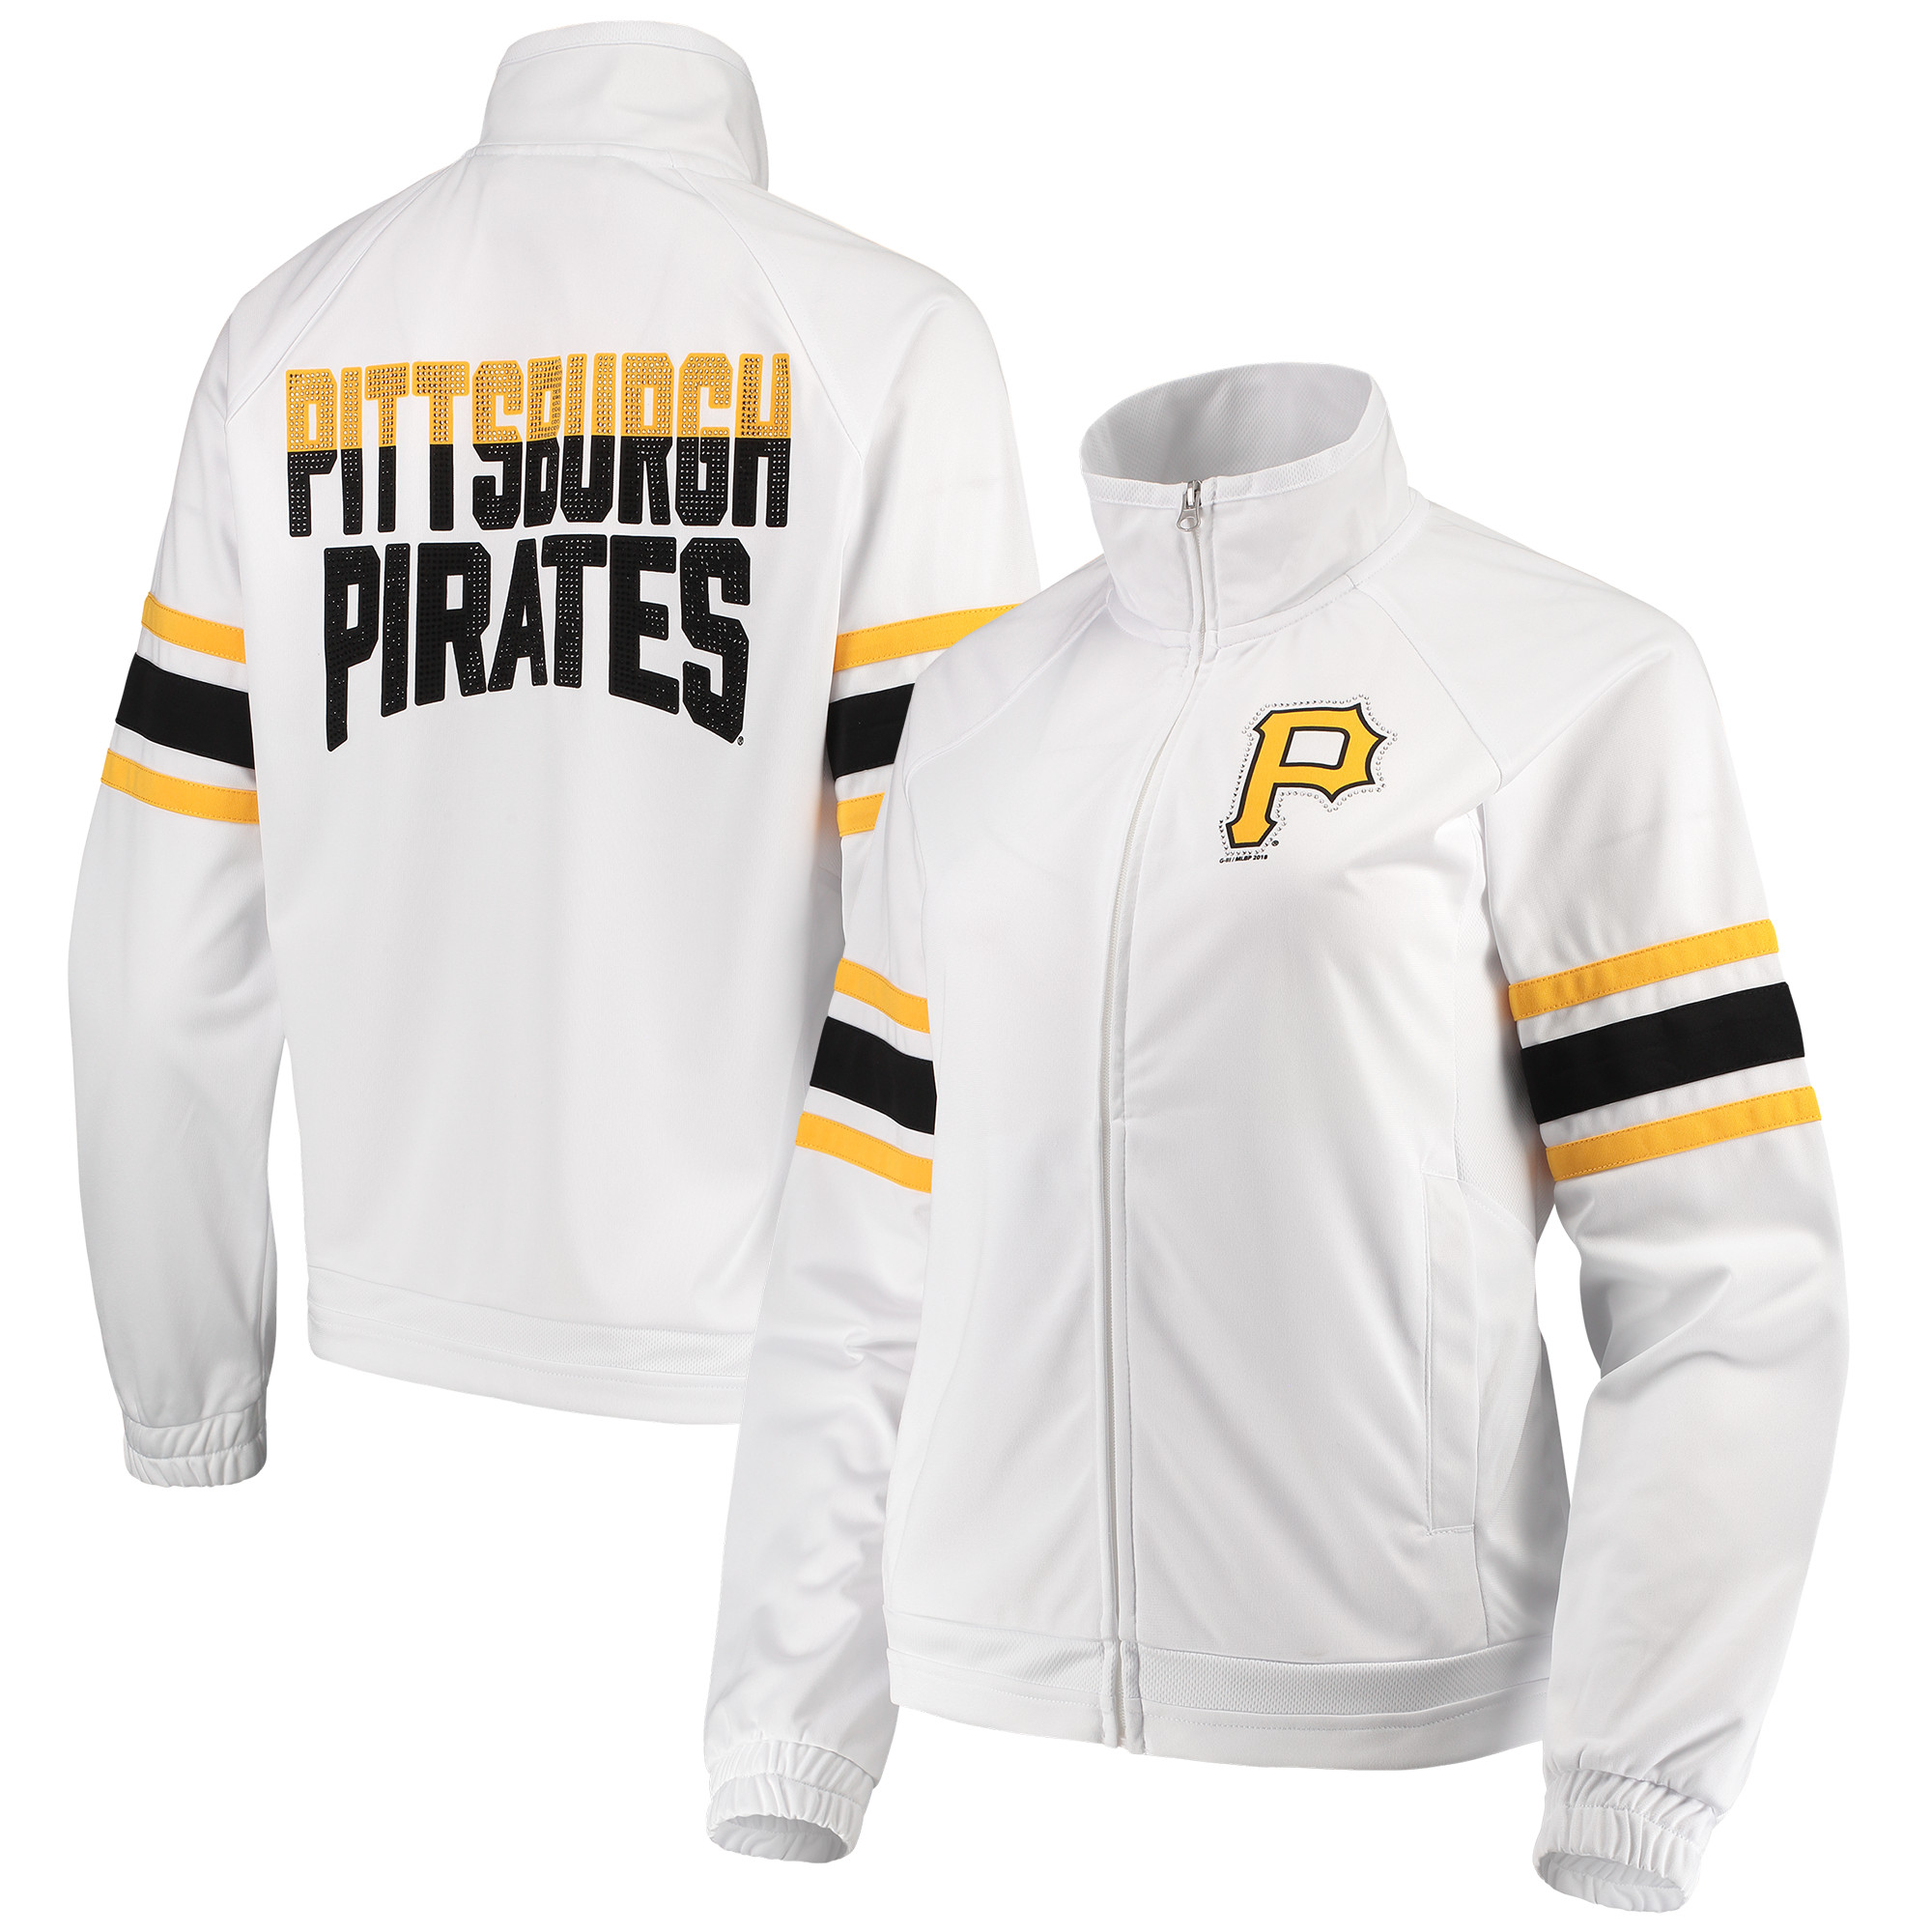 Pittsburgh Pirates G-III 4Her by Carl Banks Women's Game Score Full-Zip Track Jacket - White